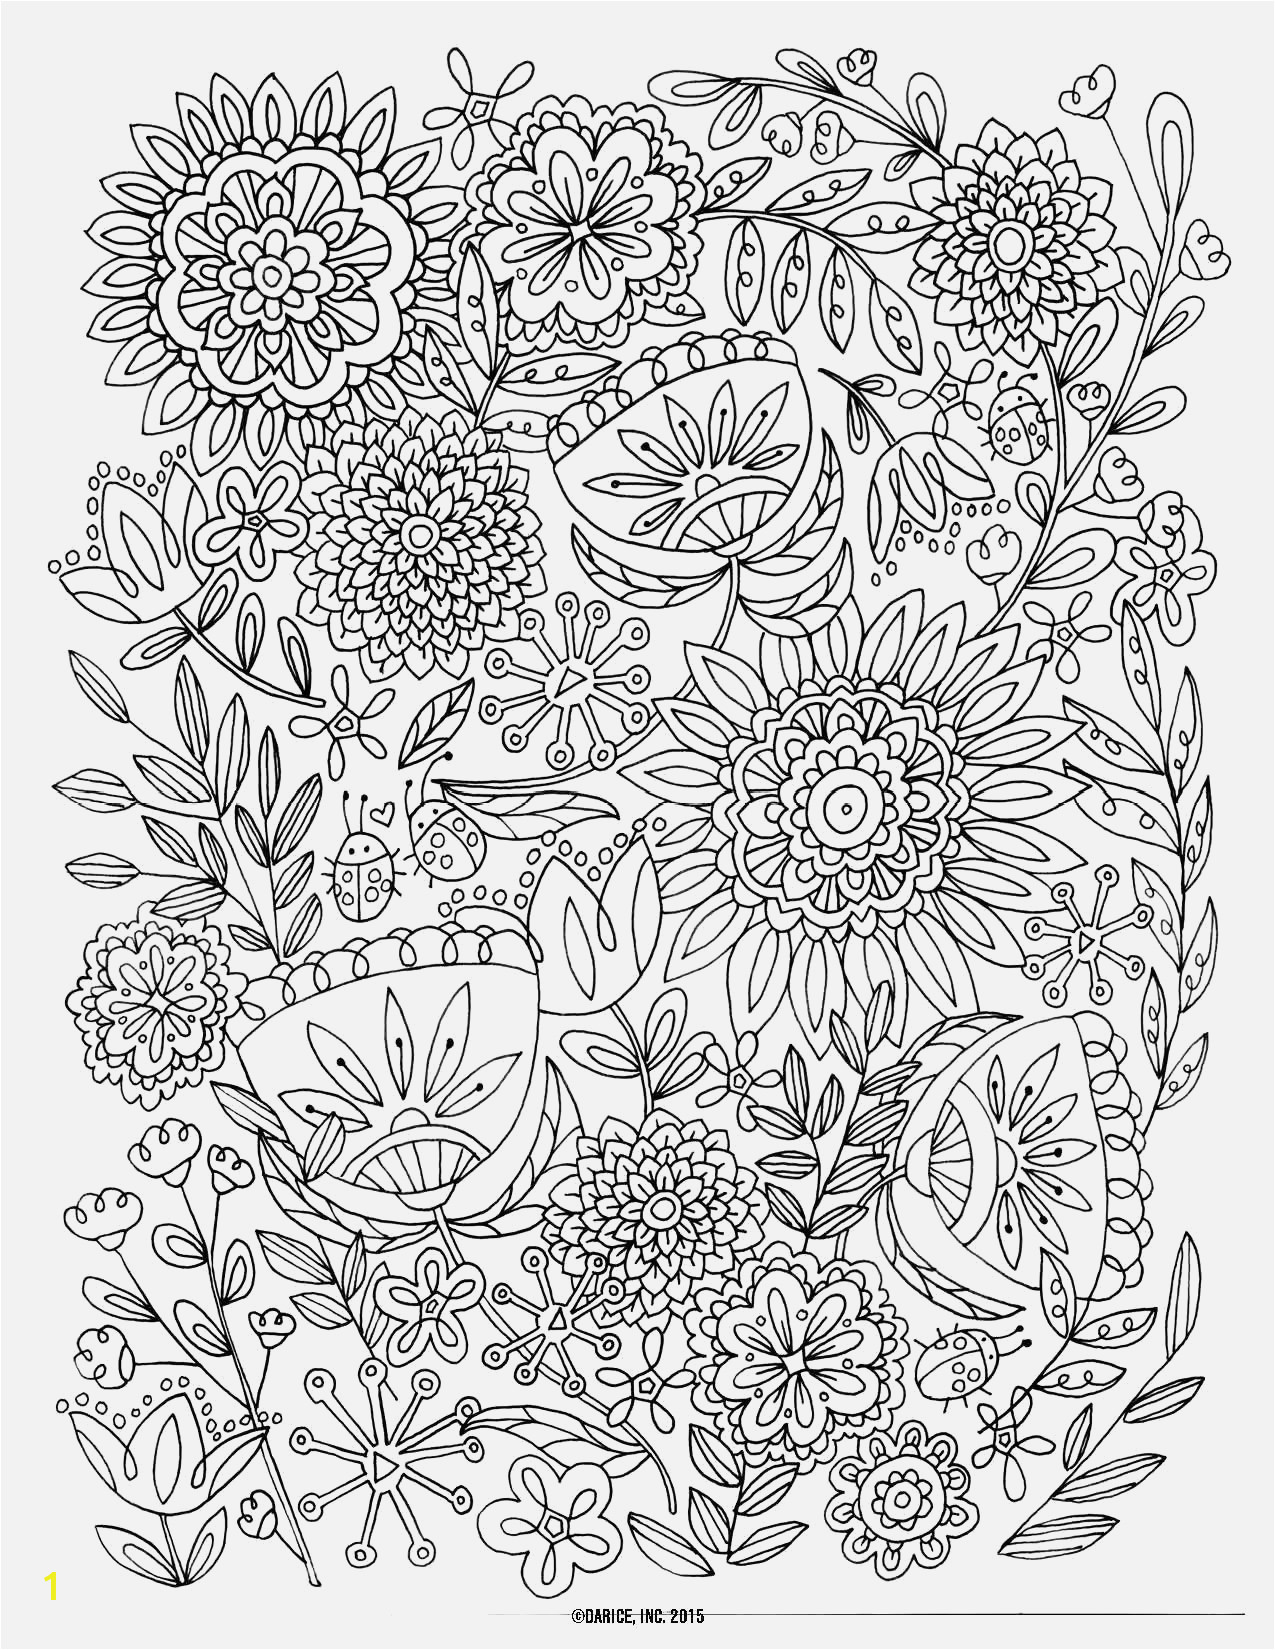 Coloring Pages Hard Coloring & Activity Hard Christmas Coloring Pages Free Coloring Pages Hard Easy